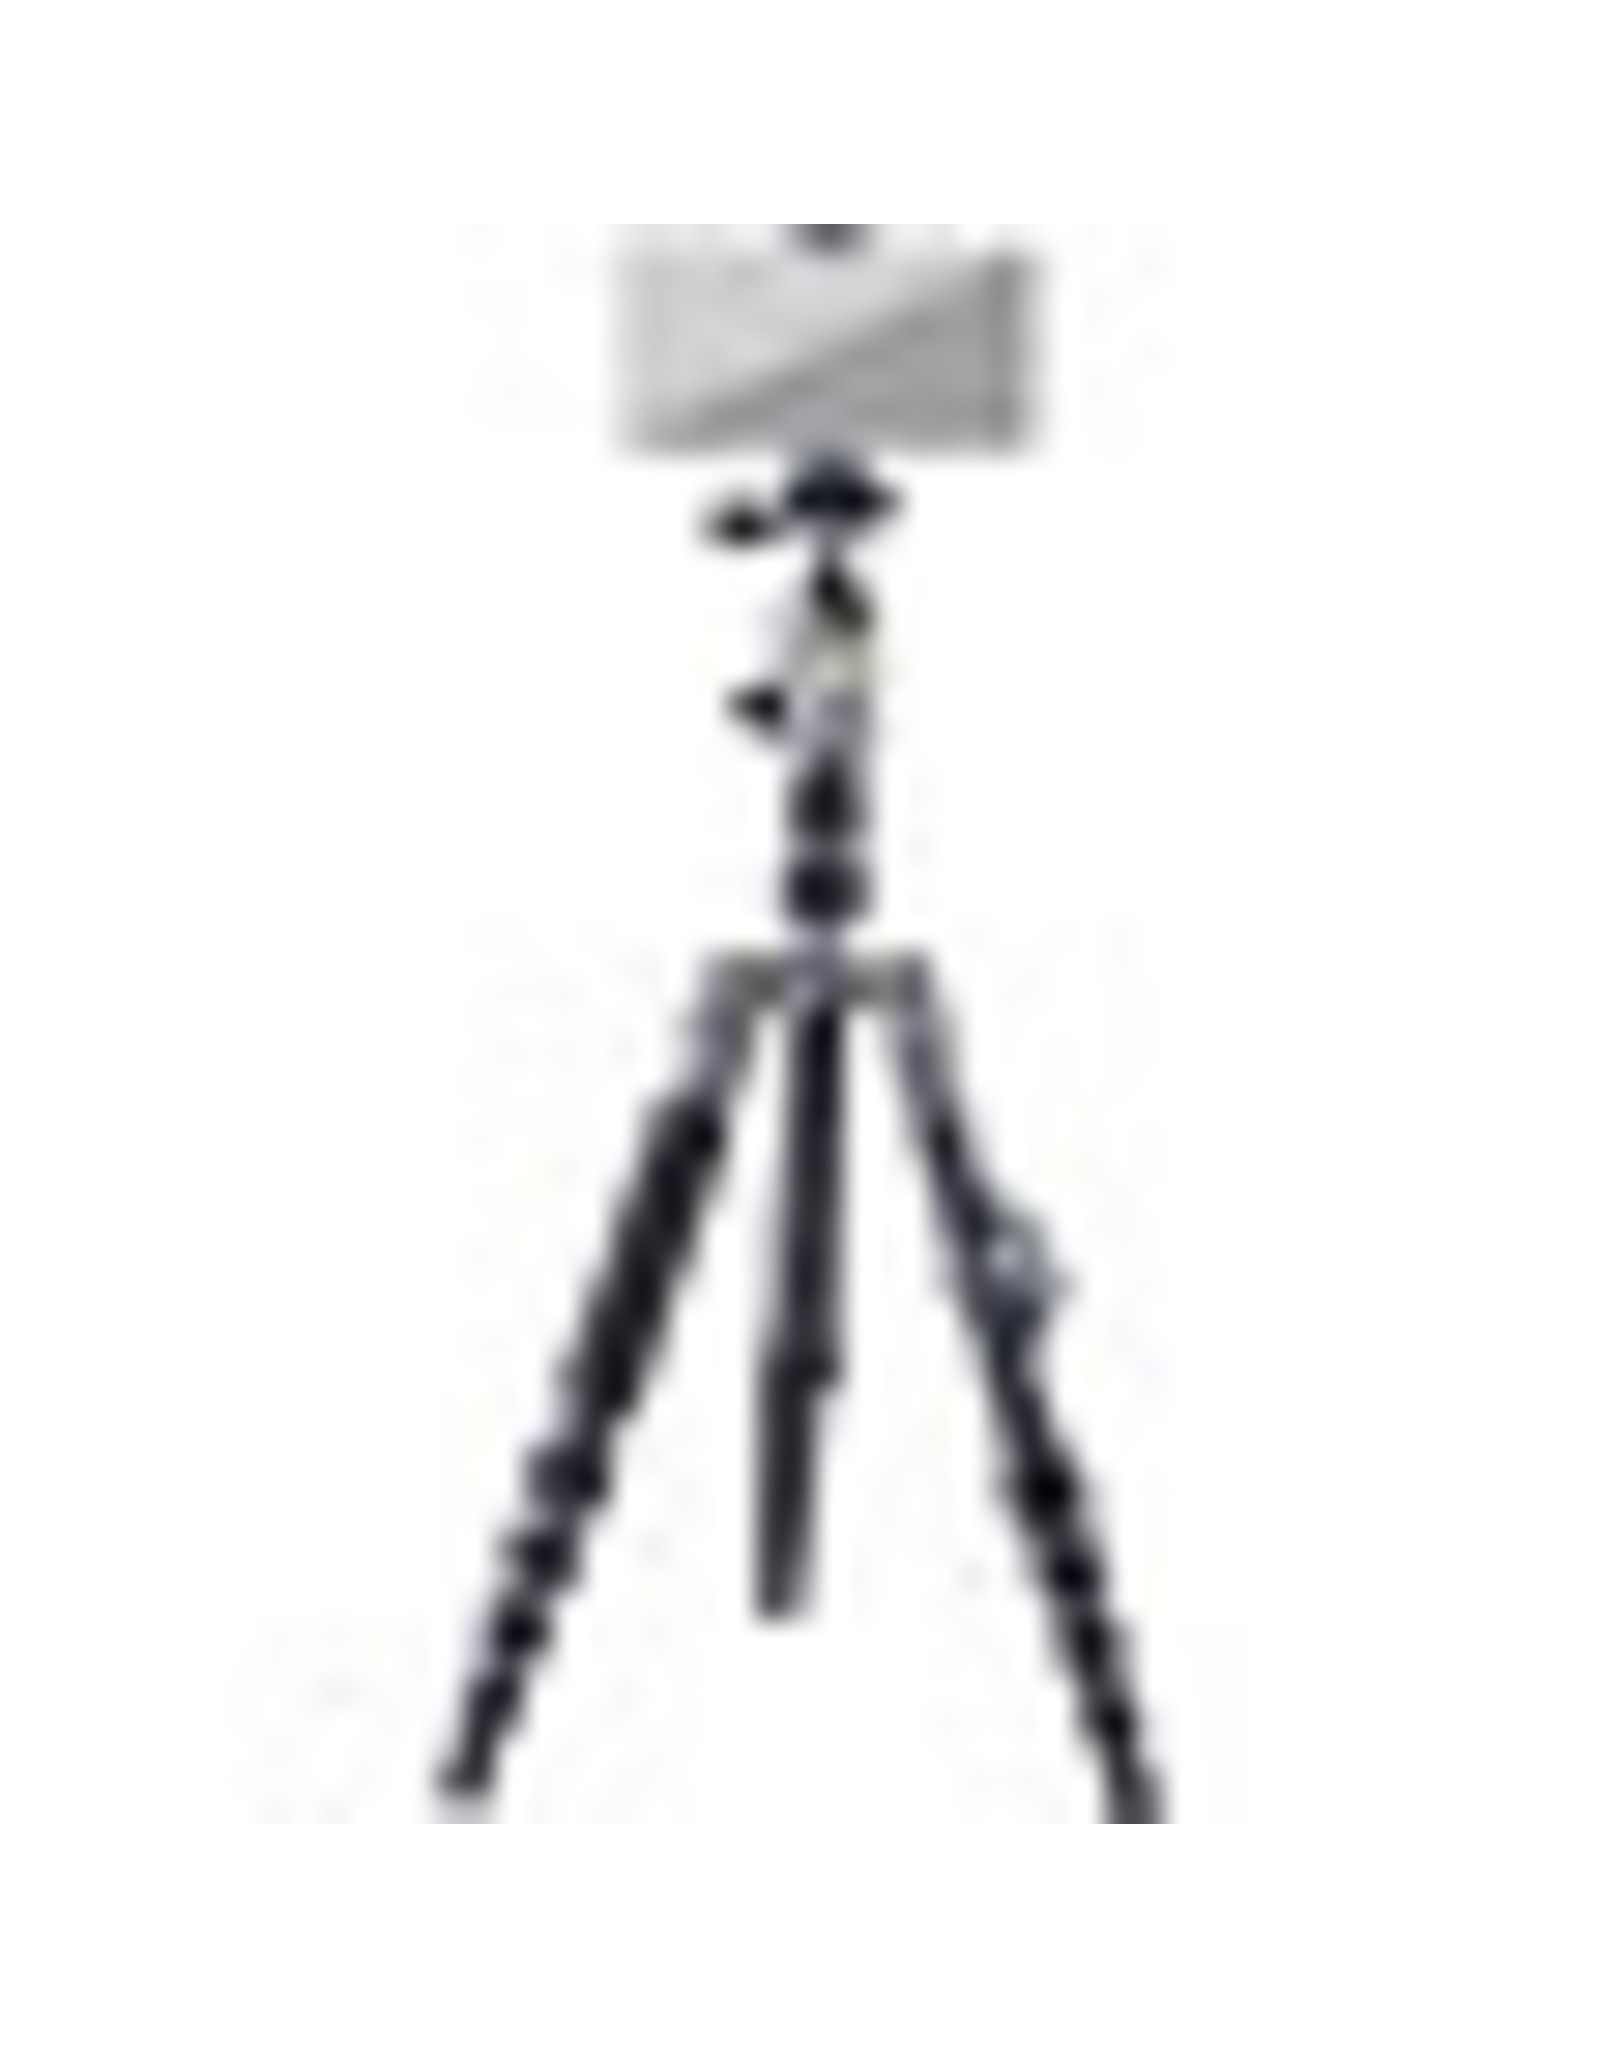 Vanguard Vanguard VEO 3 GO 235AB Aluminum Tripod/Monopod with T-50 Ball Head, Smartphone Connector, and Bluetooth Remote